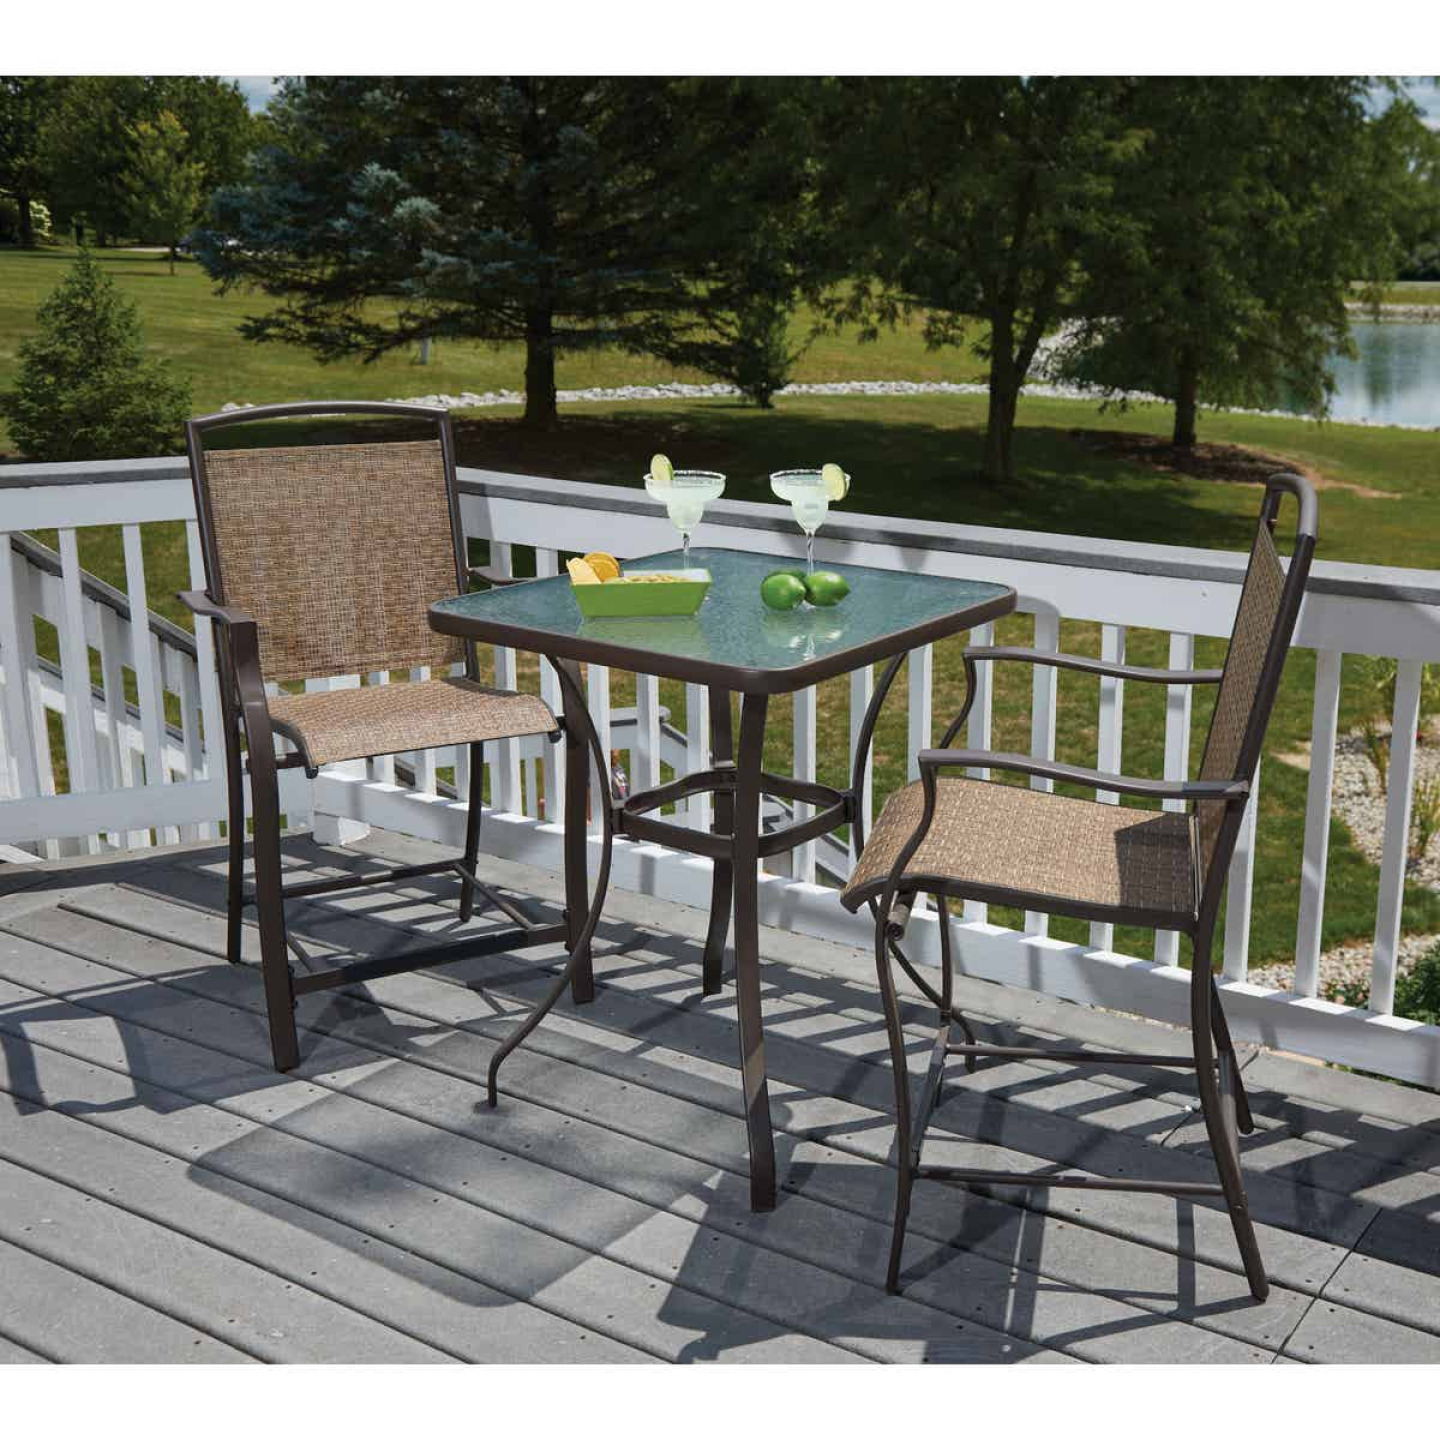 Outdoor Expressions 3-Piece Balcony Bistro Set Image 3